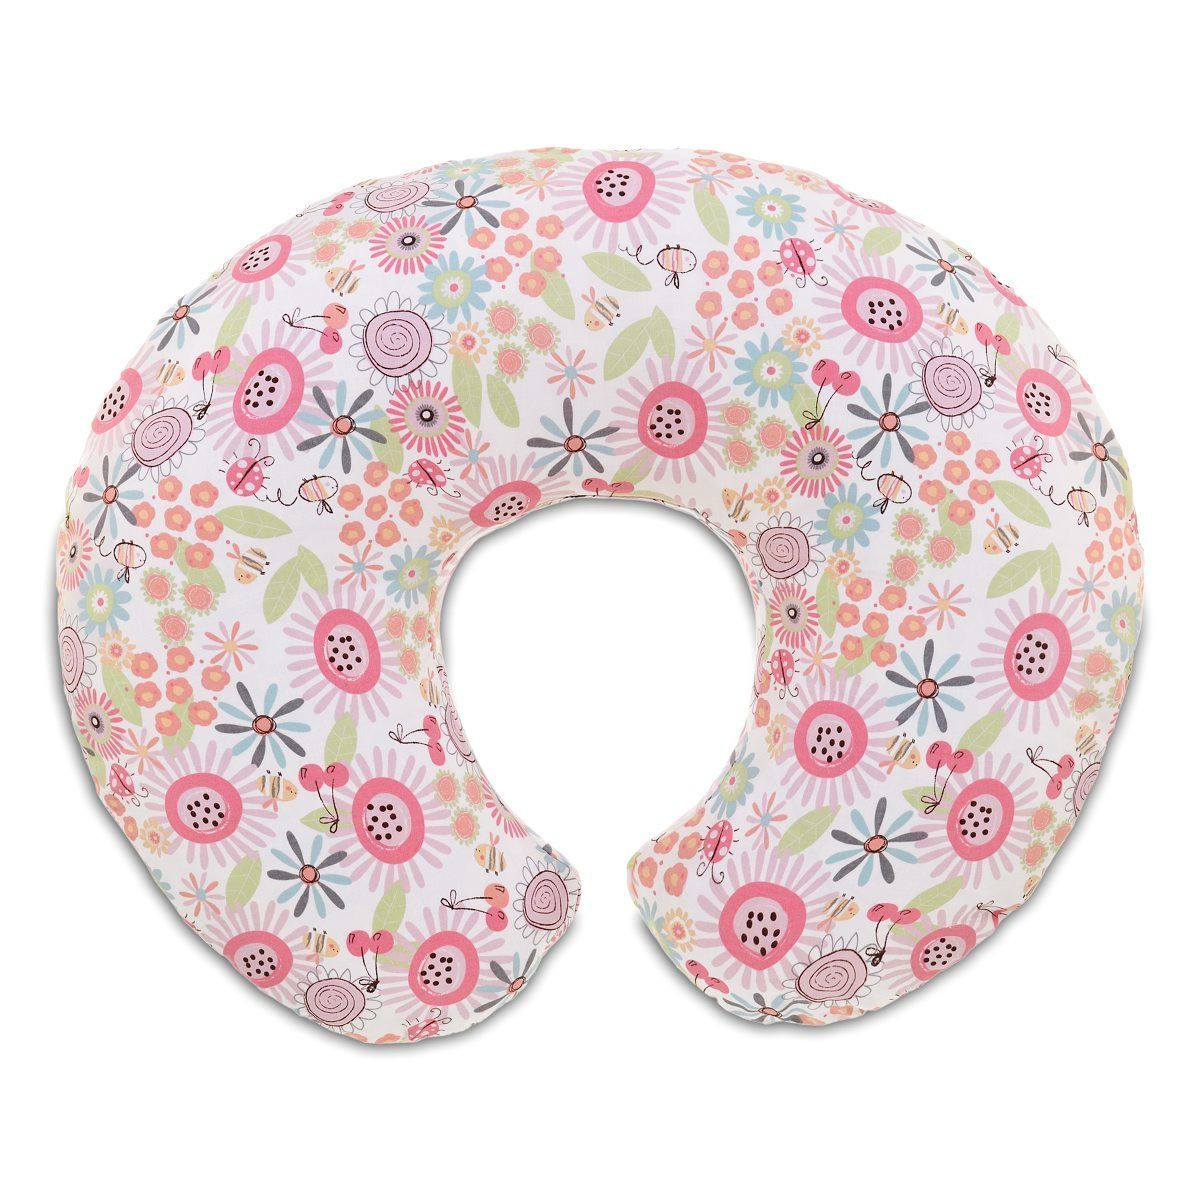 FODERA-IN-COTONE-BOPPY-FRENCH-ROSE-150121-01-1200x1200